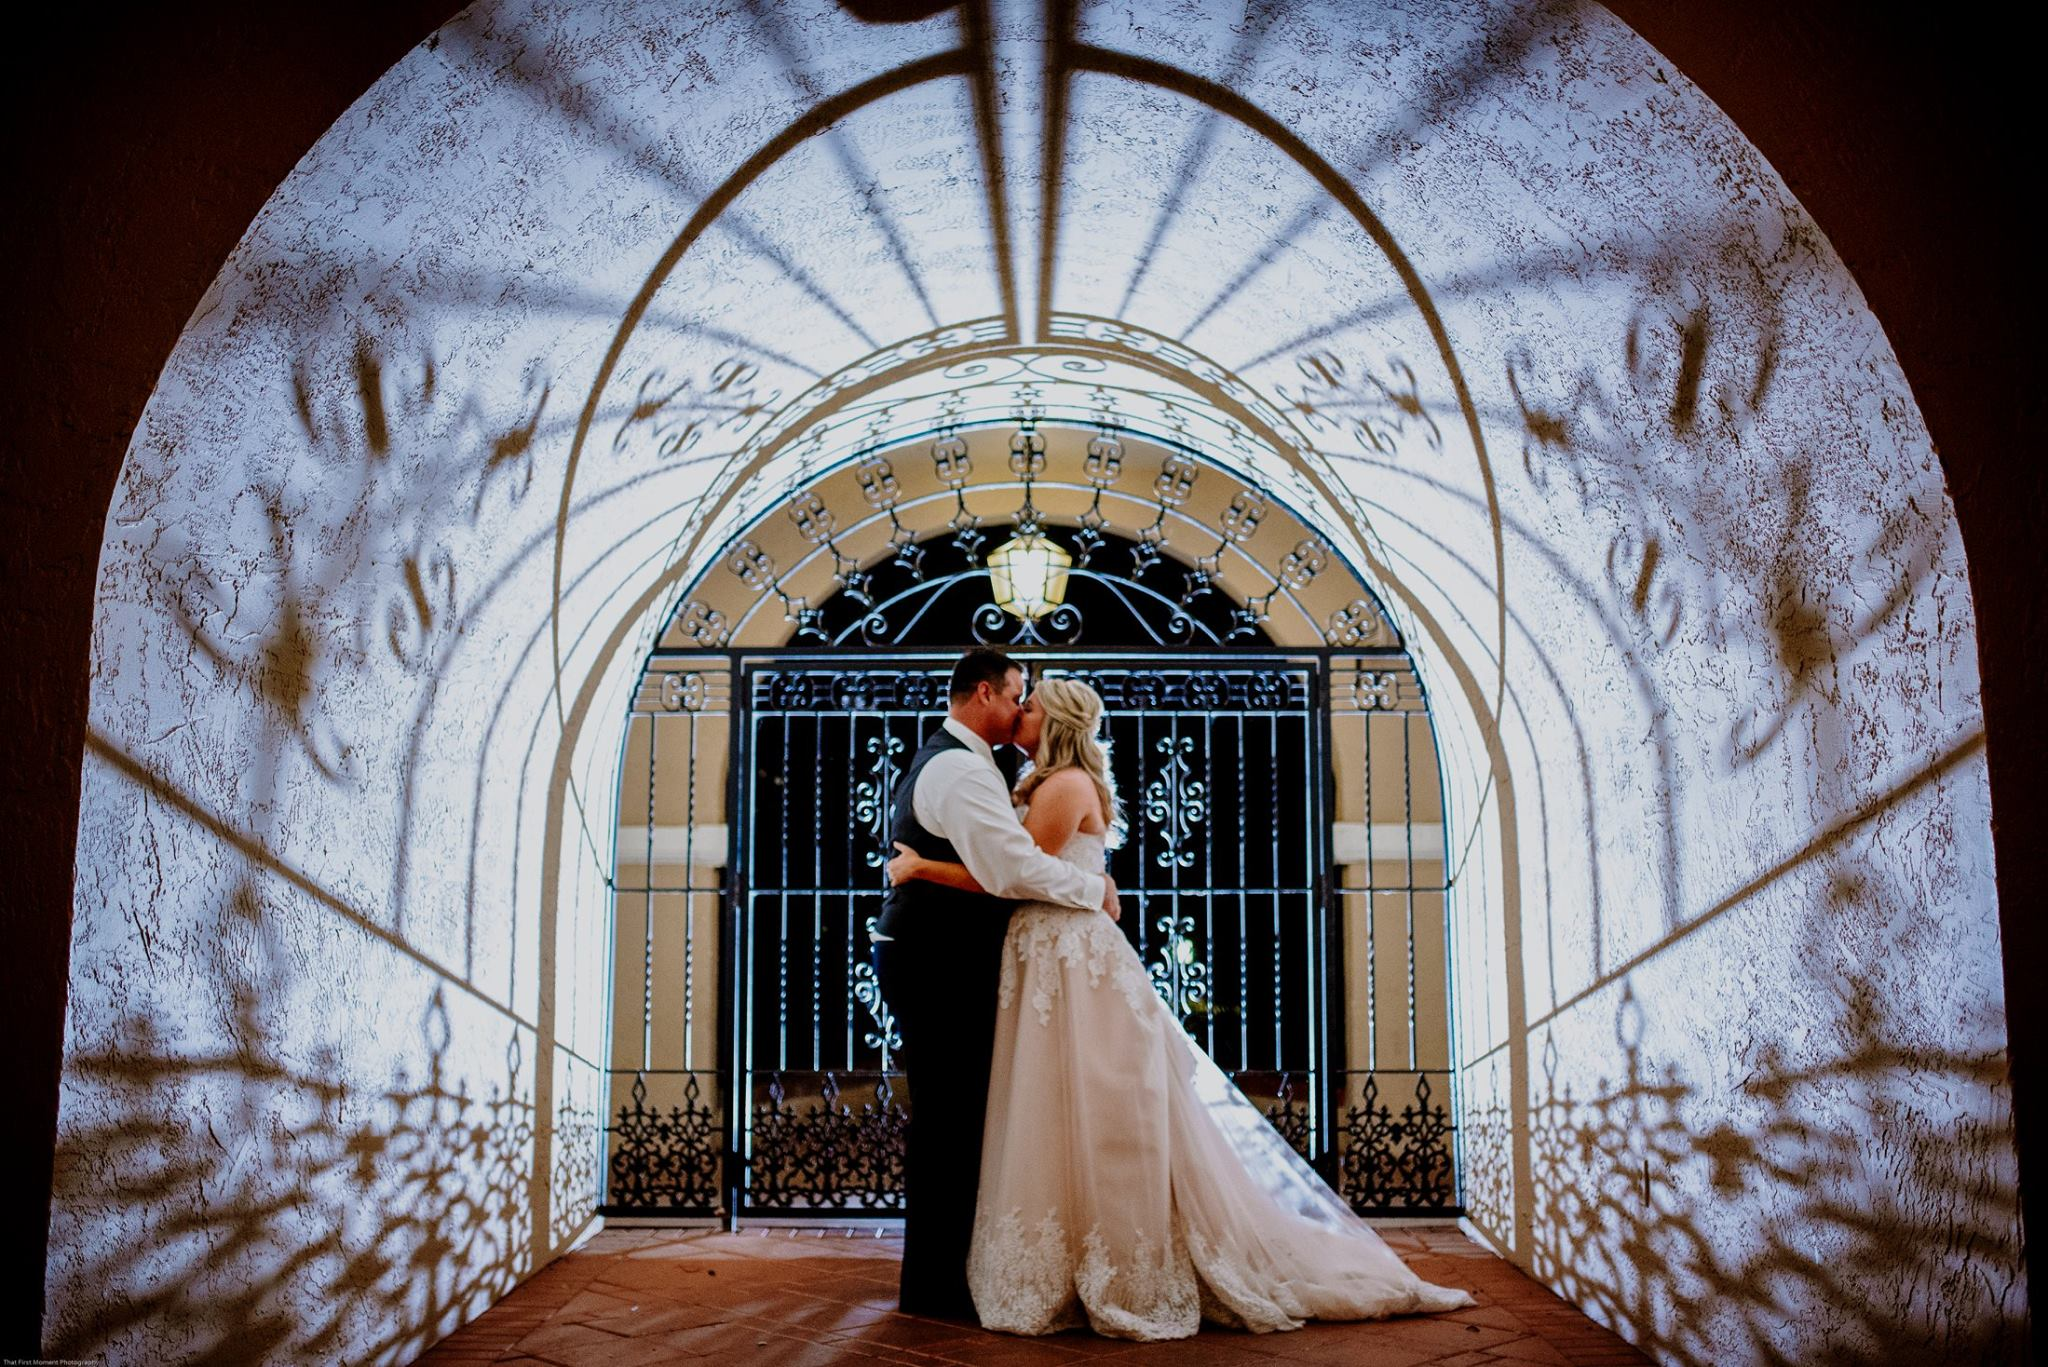 Bride and groom kissing in beautiful tunnel with wrought iron door